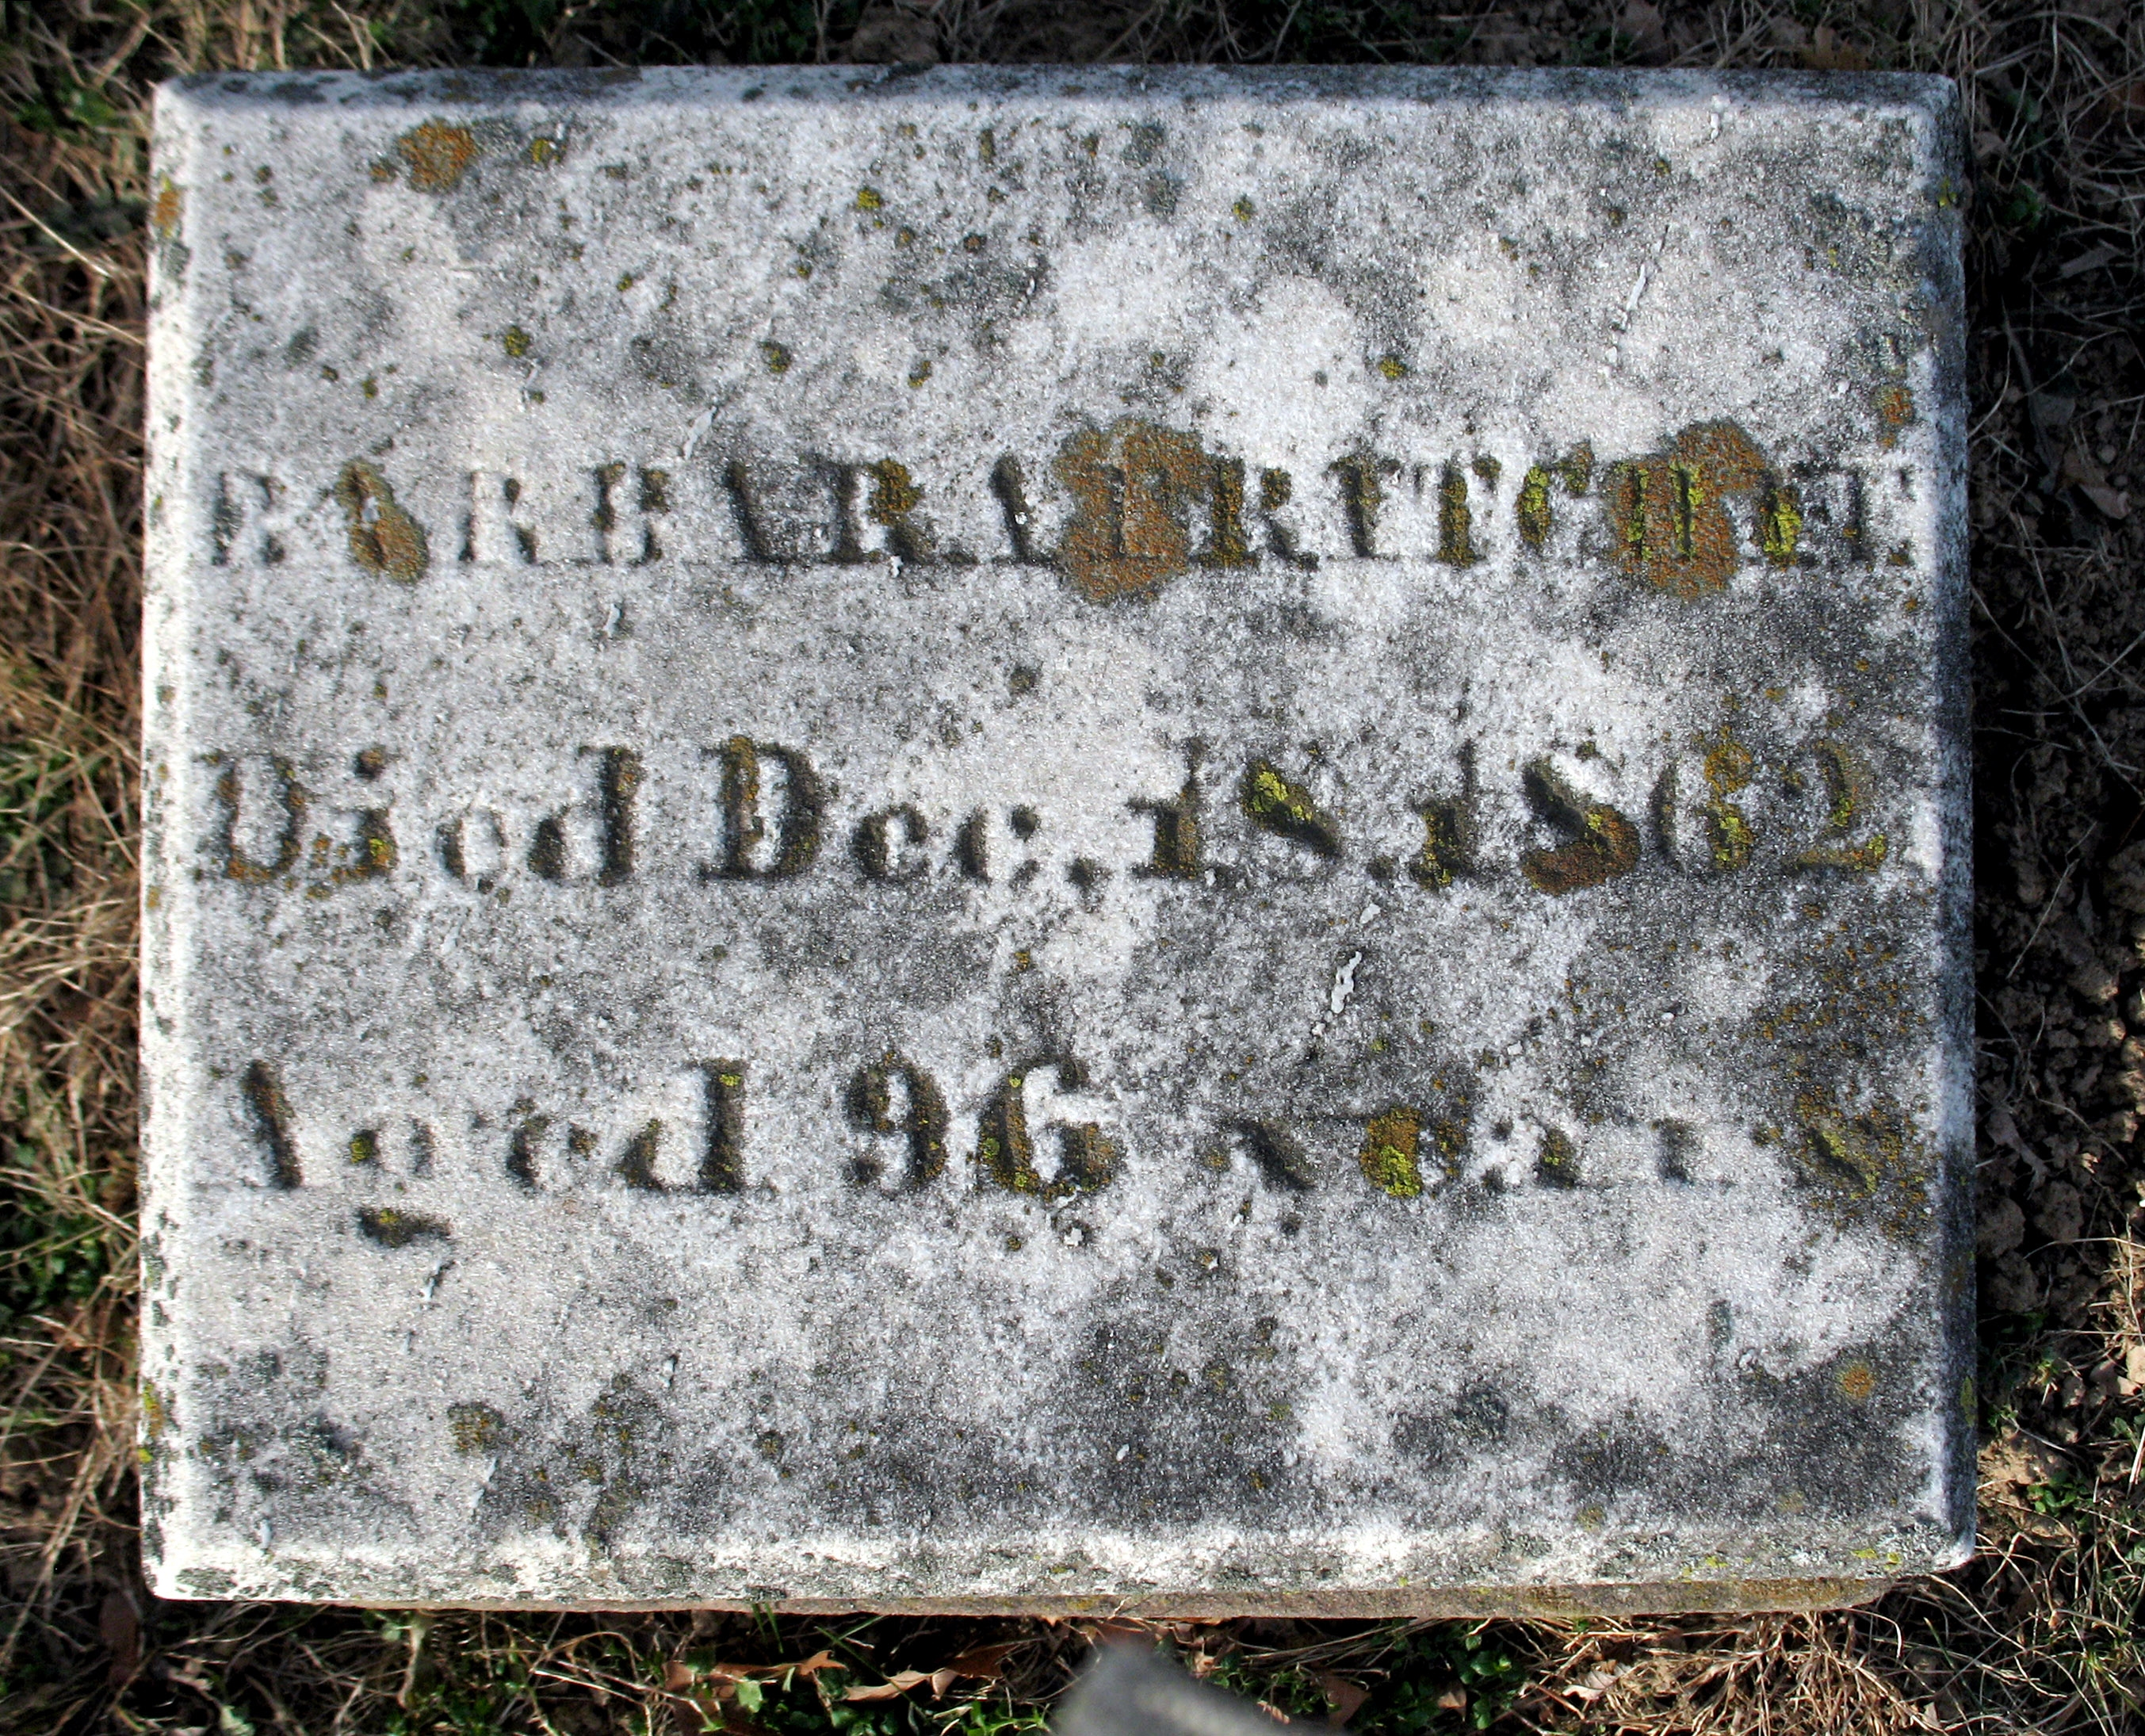 Barbara Fritchie<br>Died Dec. 18, 1862<br>Aged 96 Years